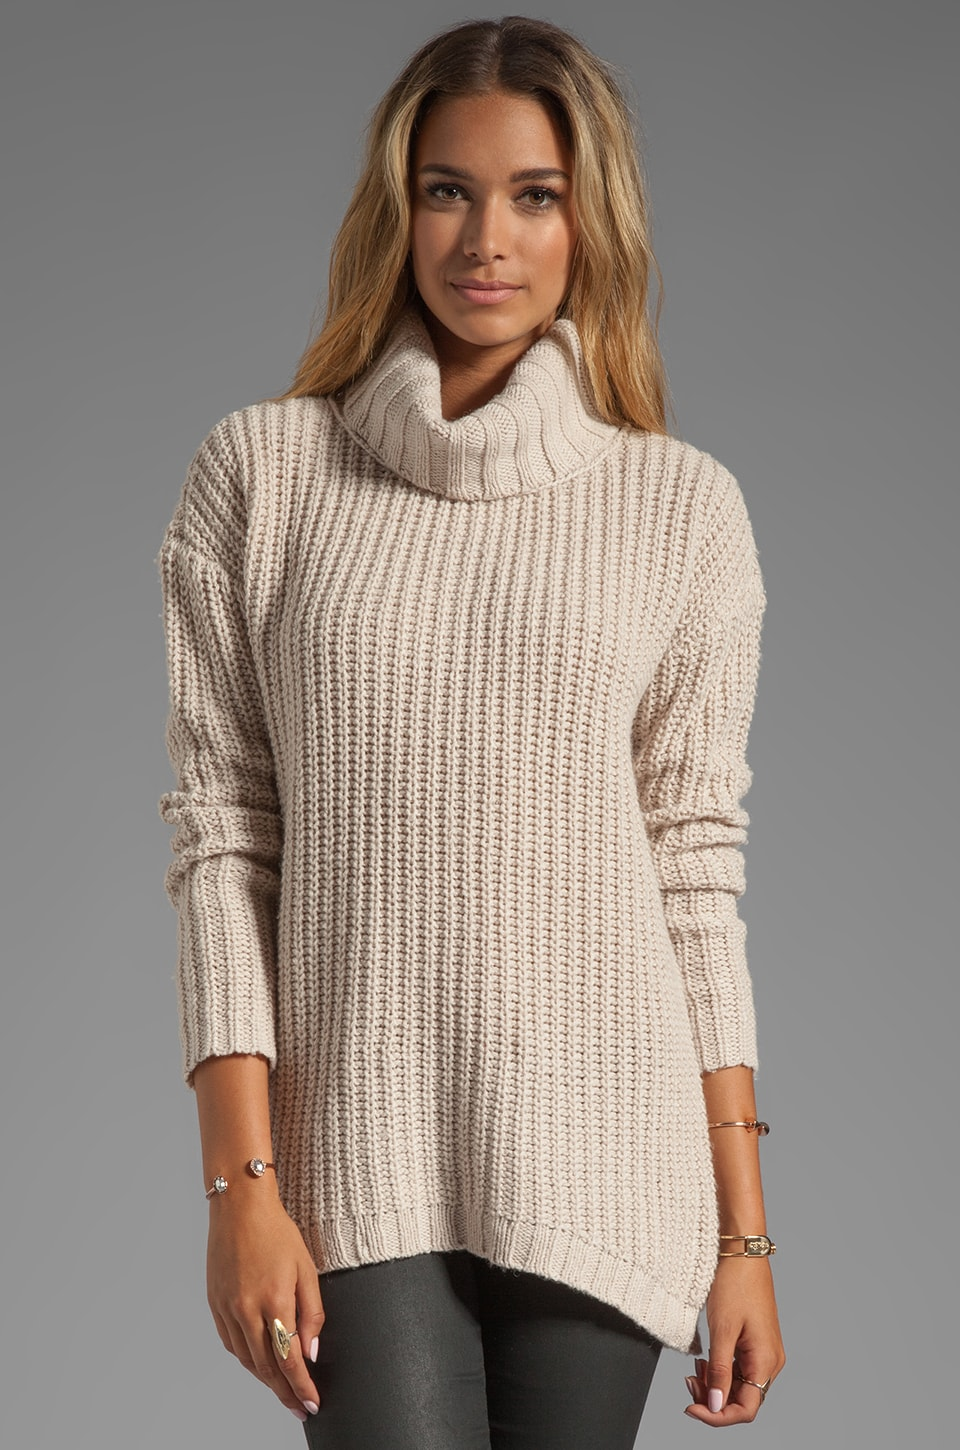 Soft Joie Alex Rib Sweater in Grey Morn